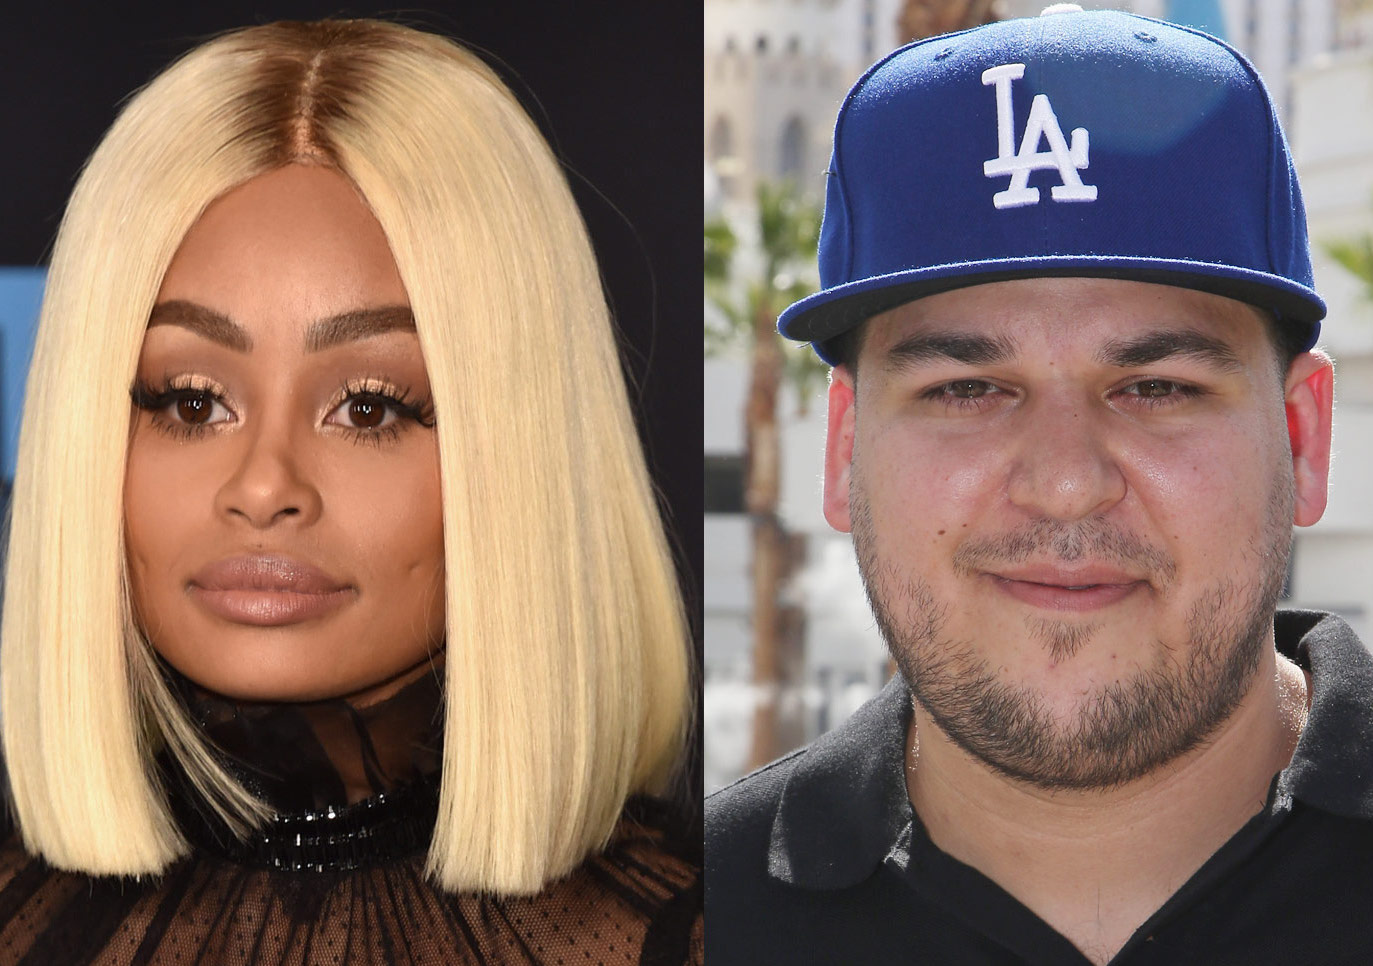 Blac chyna to file restraining order against rob for How much are chip and joanna paid per episode